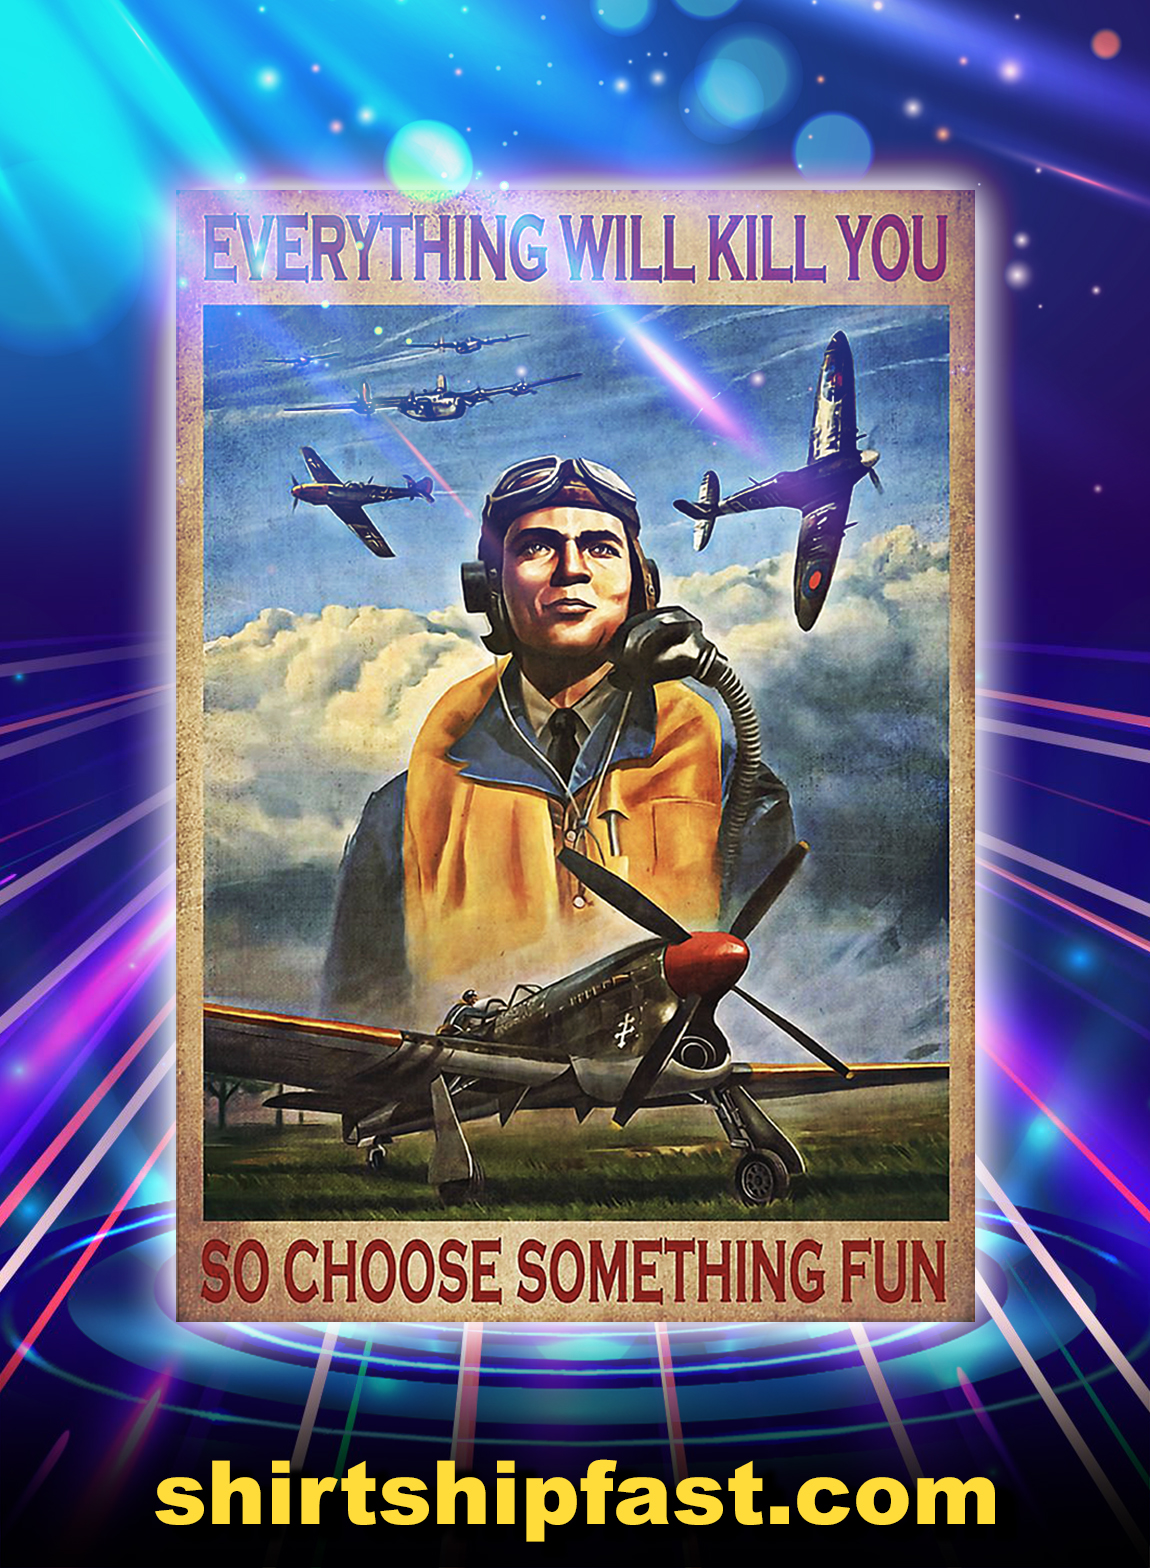 Pilot everything will kill you so choose something fun poster - A3